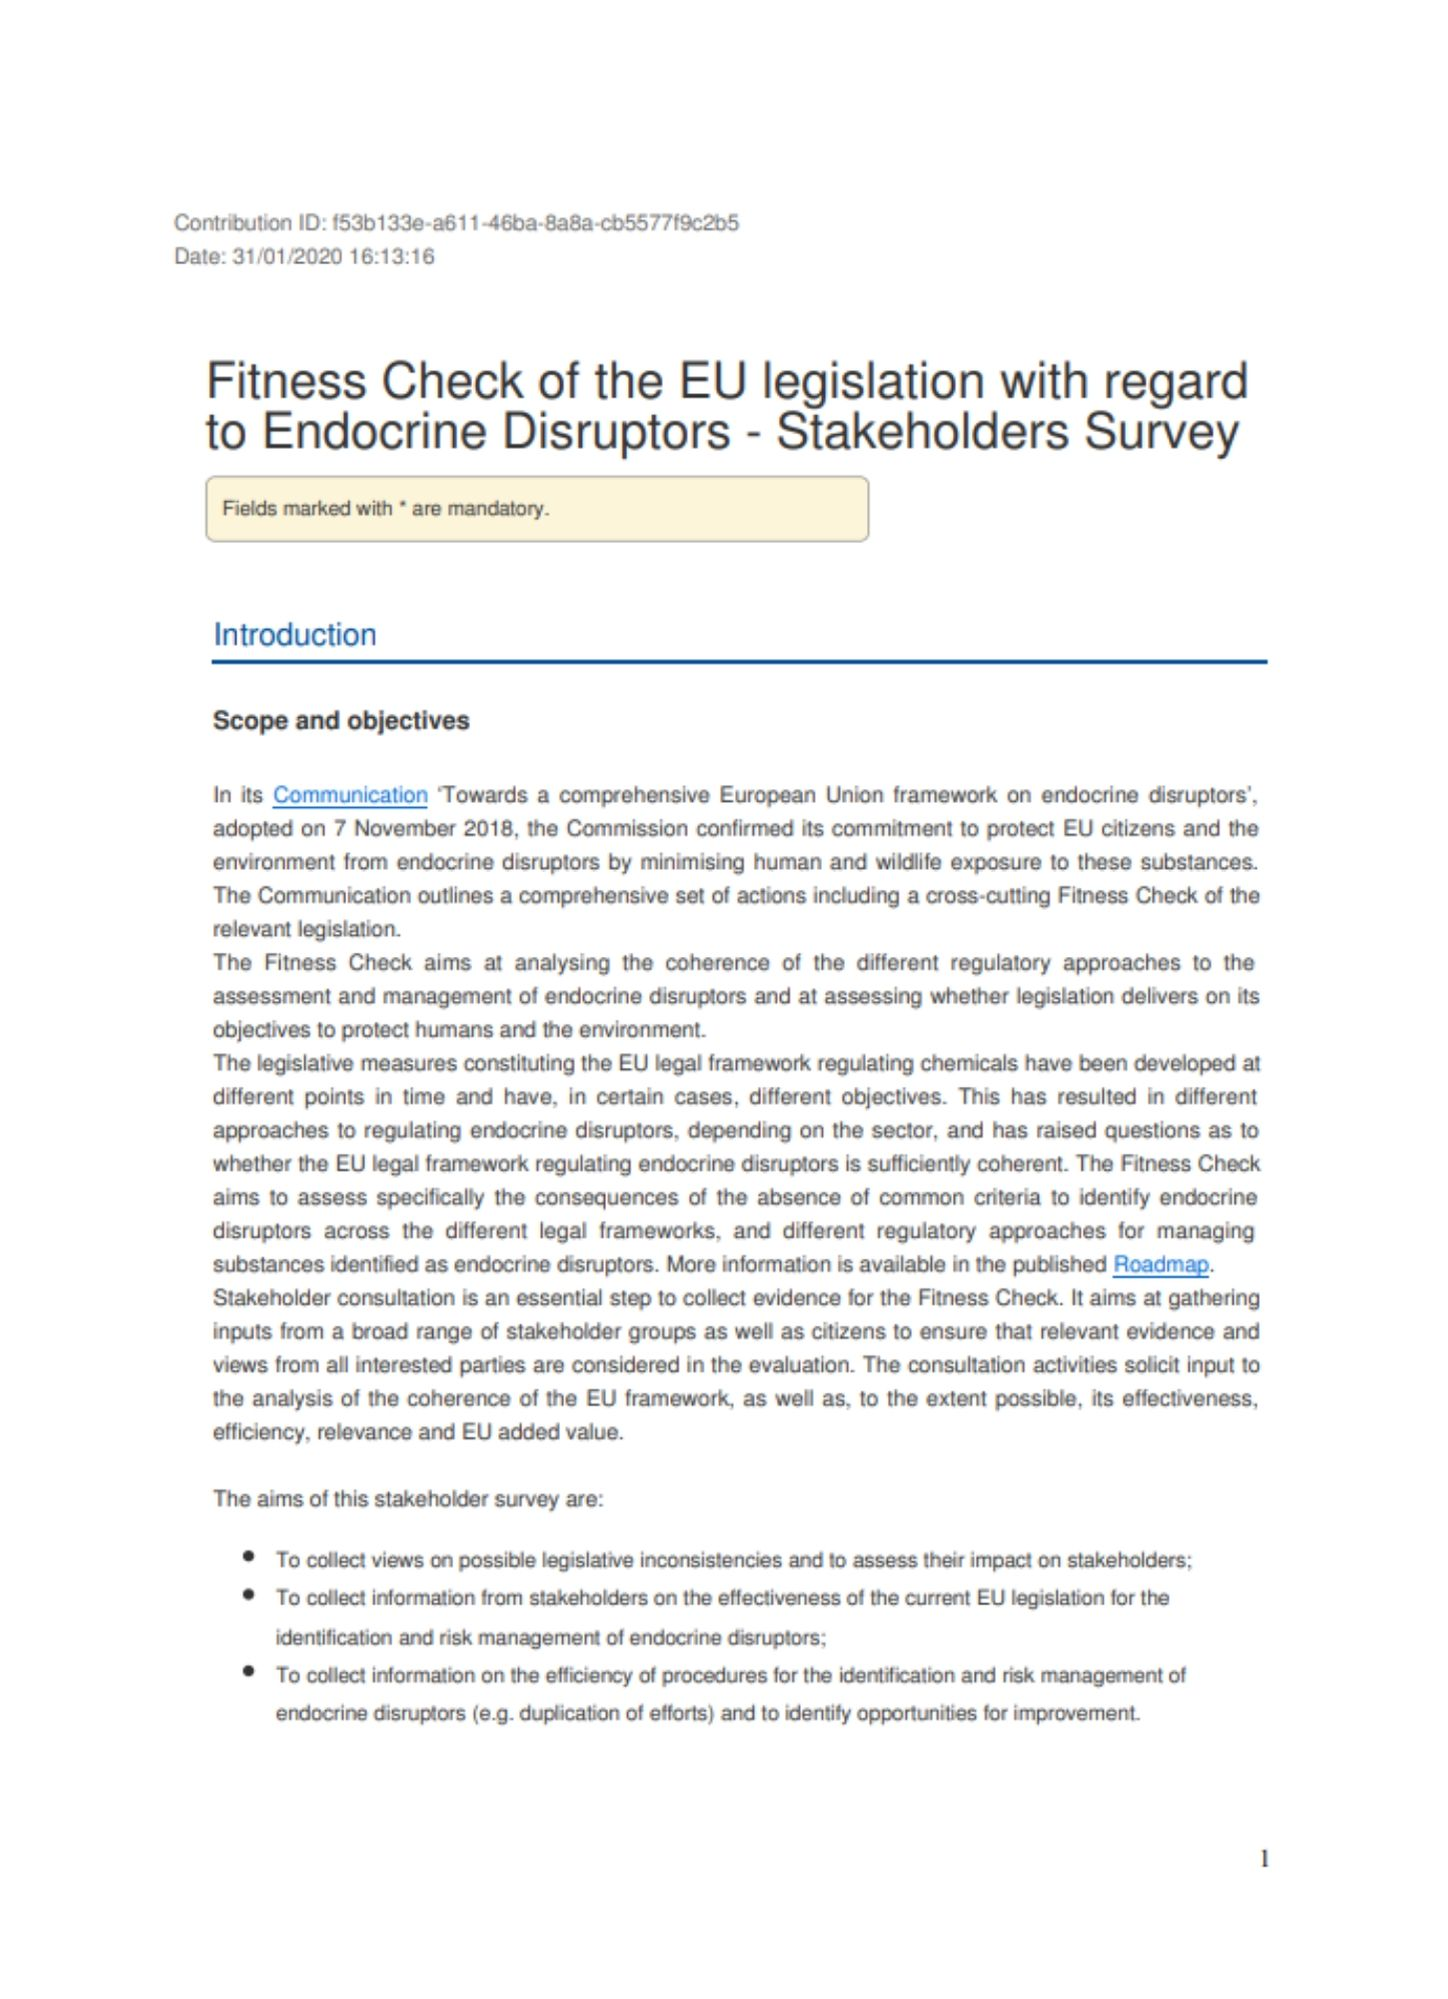 Consultation - Fitness Check on the Regulation on Endocrine Disruptors